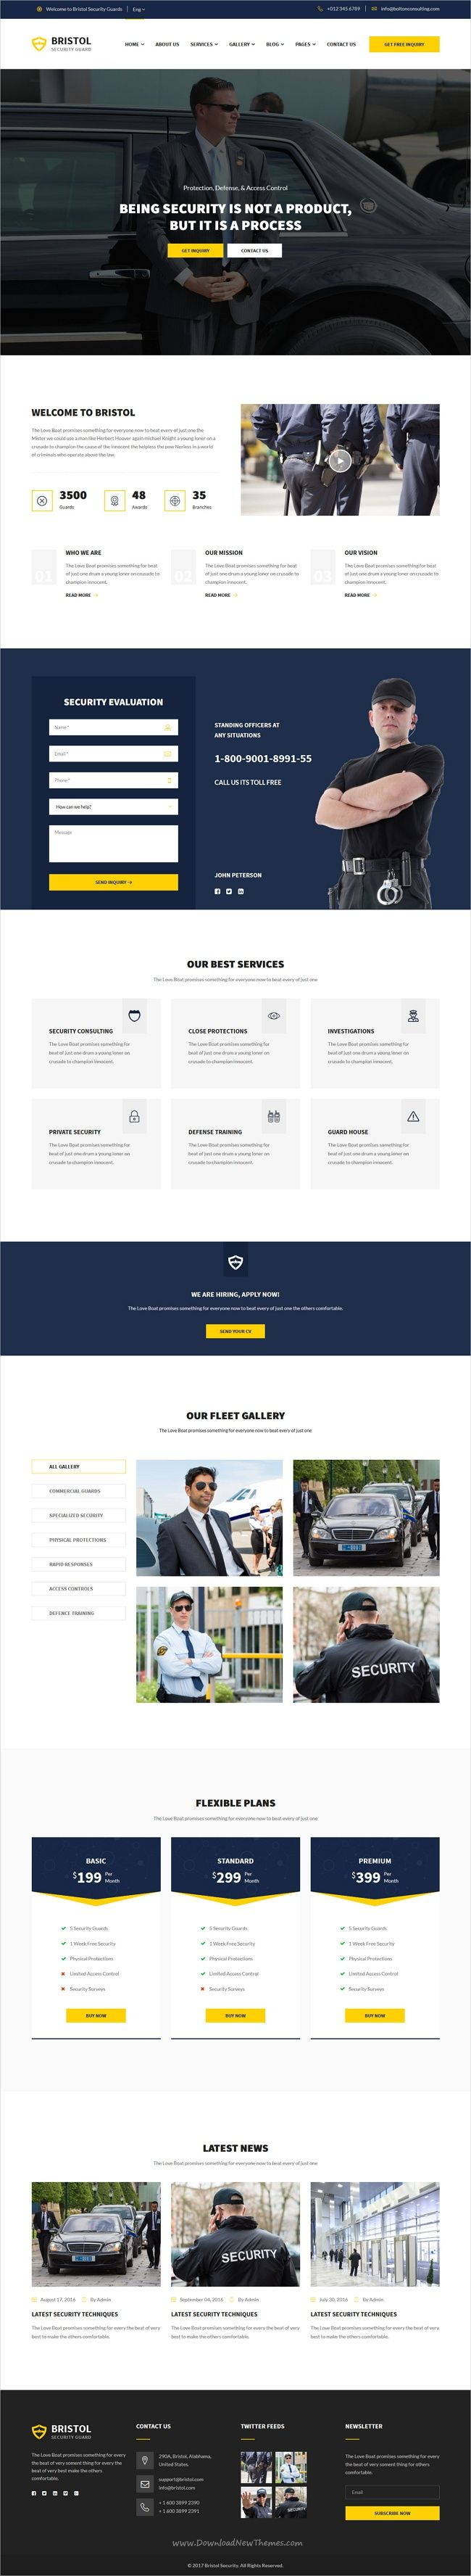 Bristol is a wonderful 3in1 responsive HTML #bootstrap template for #bodyguards, security #companies, private investigators, alarm and protection services agencies, guardians and security systems offices websites download now➩  https://themeforest.net/item/bristol-security-services-html-template/19299491?ref=Datasata